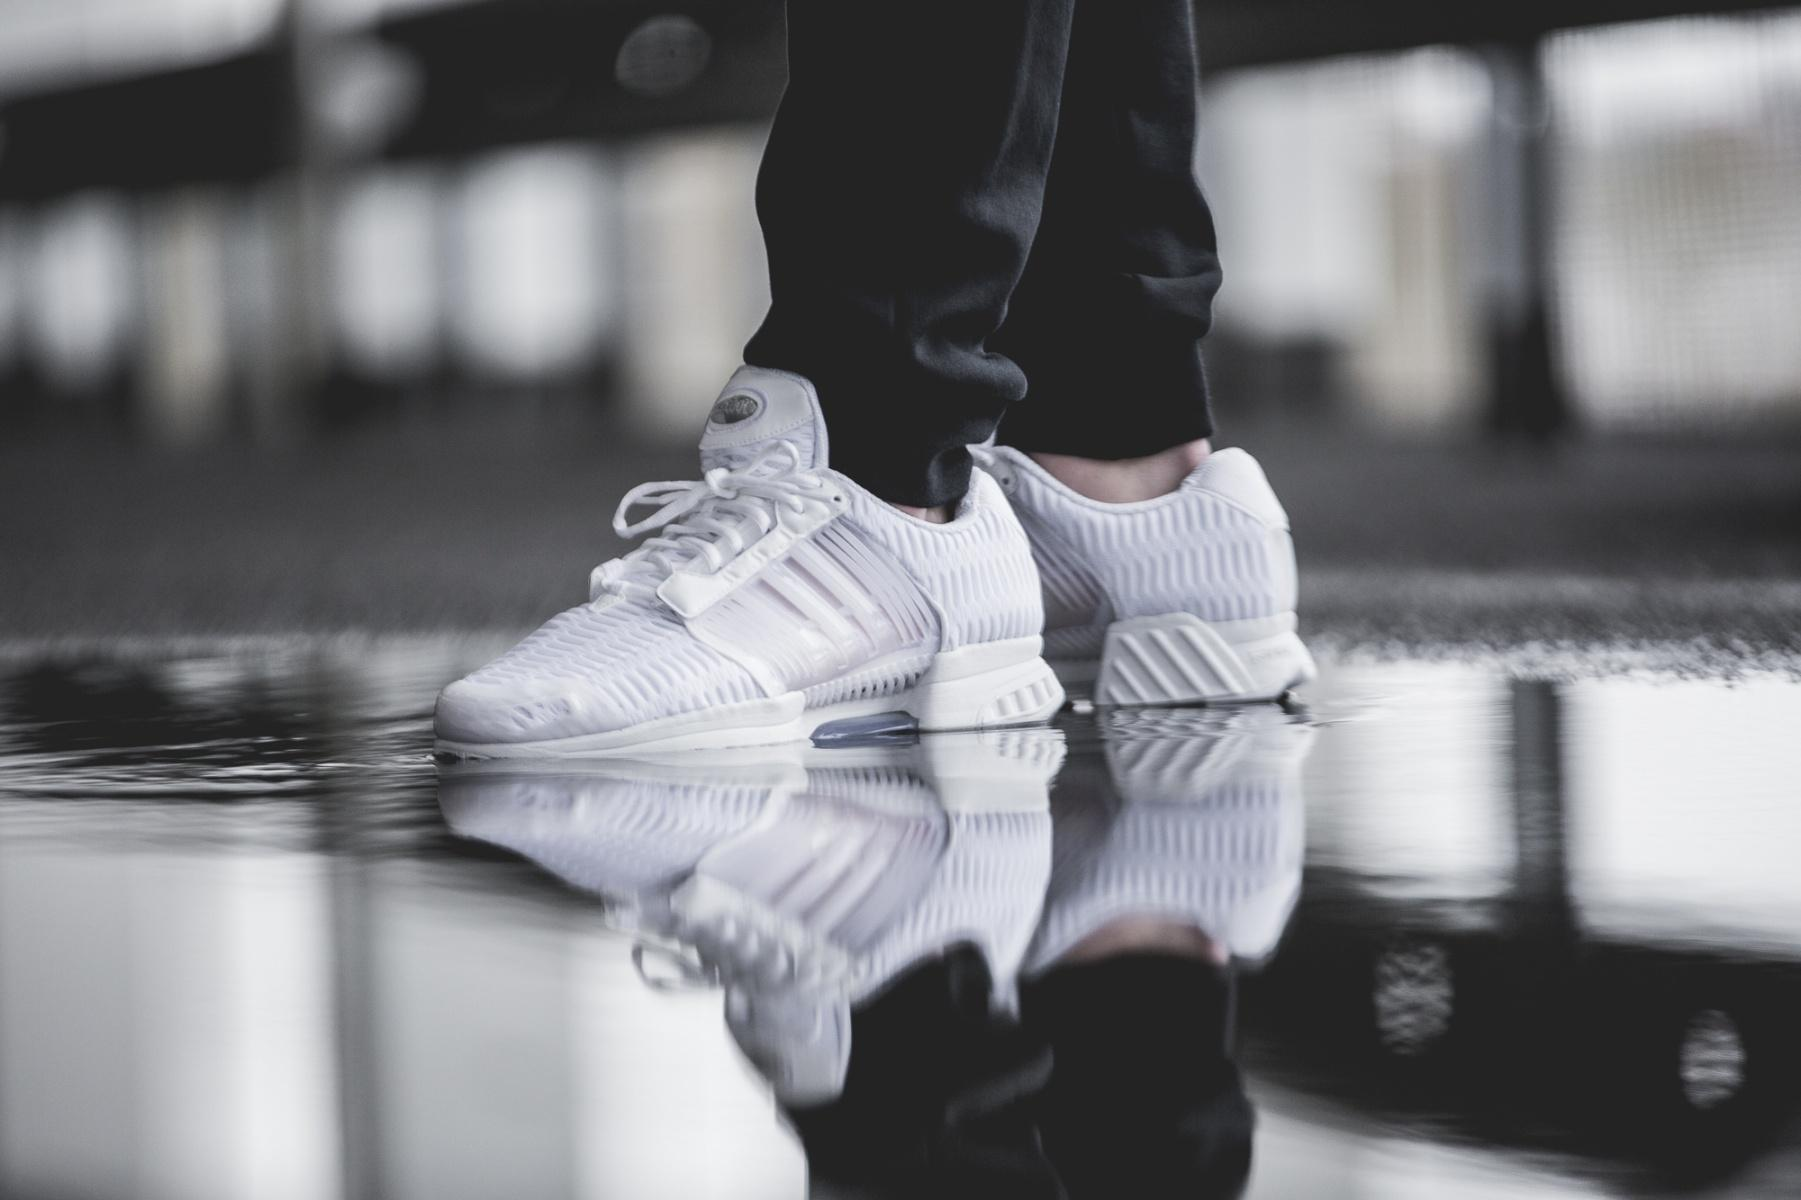 $84 MEN'S ORIGINALS CLIMACOOL 1 SHOES @ adidas